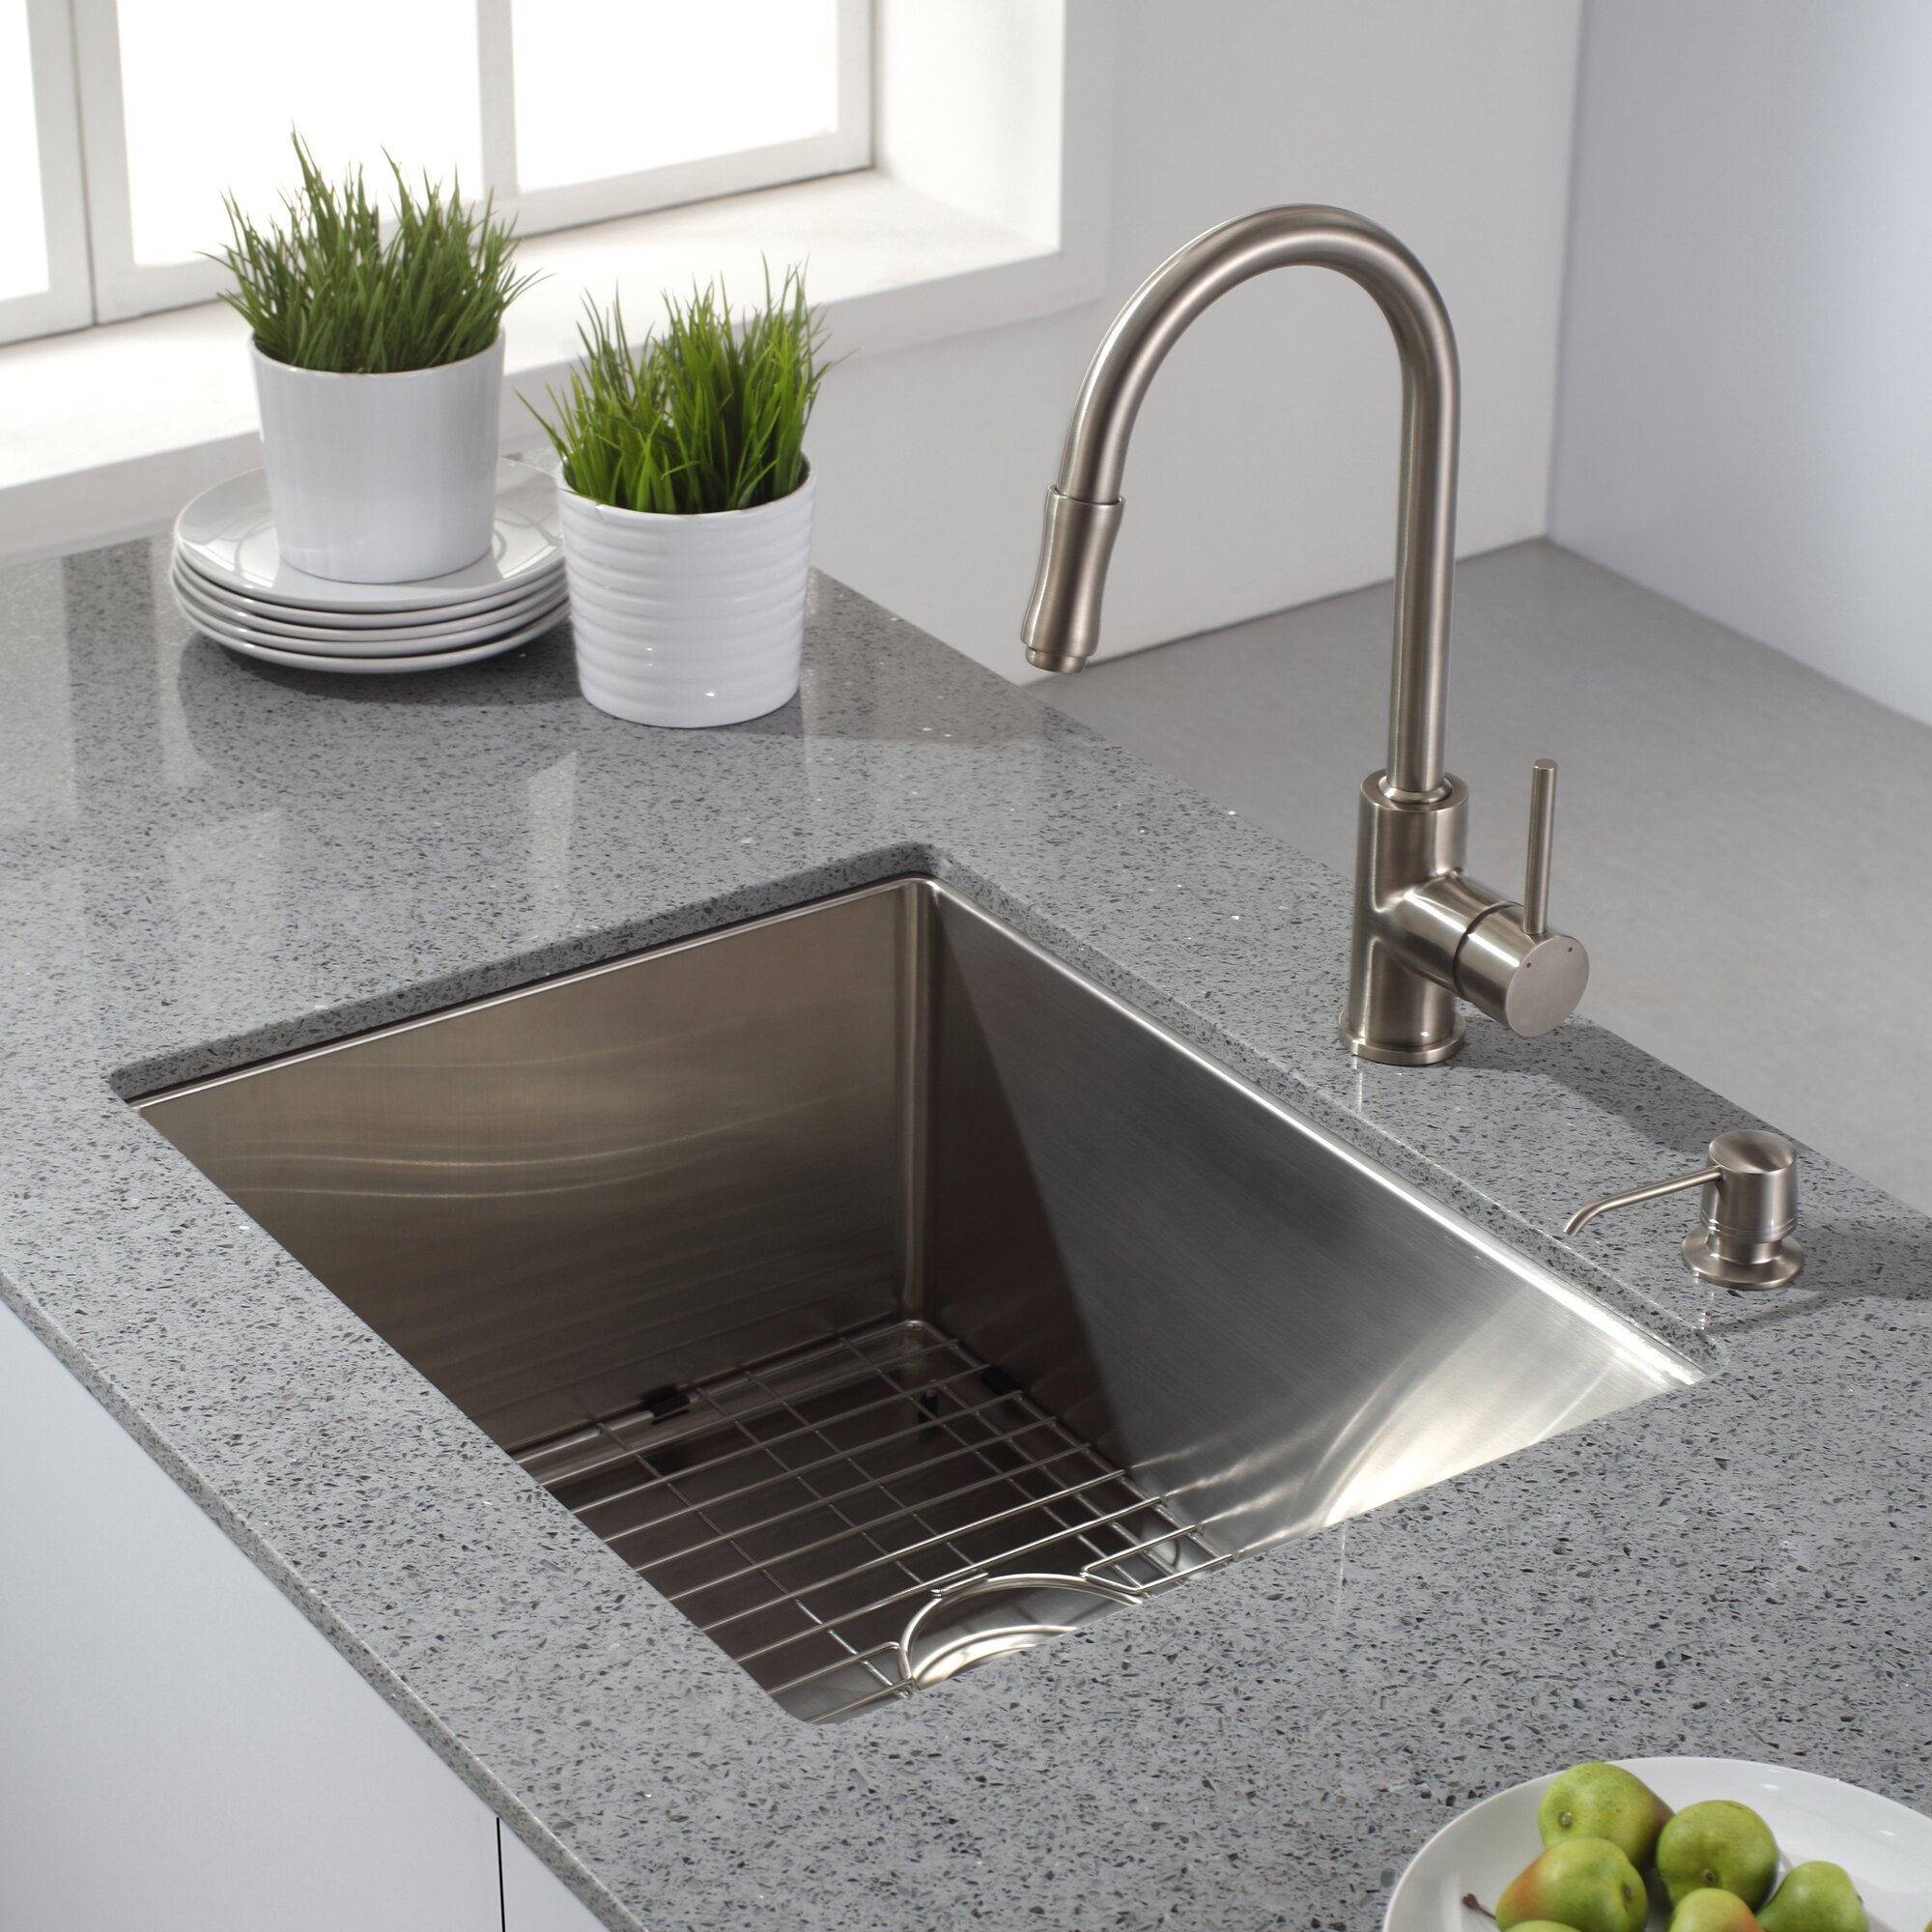 Kitchen Sinks Square Kitchen Sink Drinking Water Faucet Kitchen Sink ...